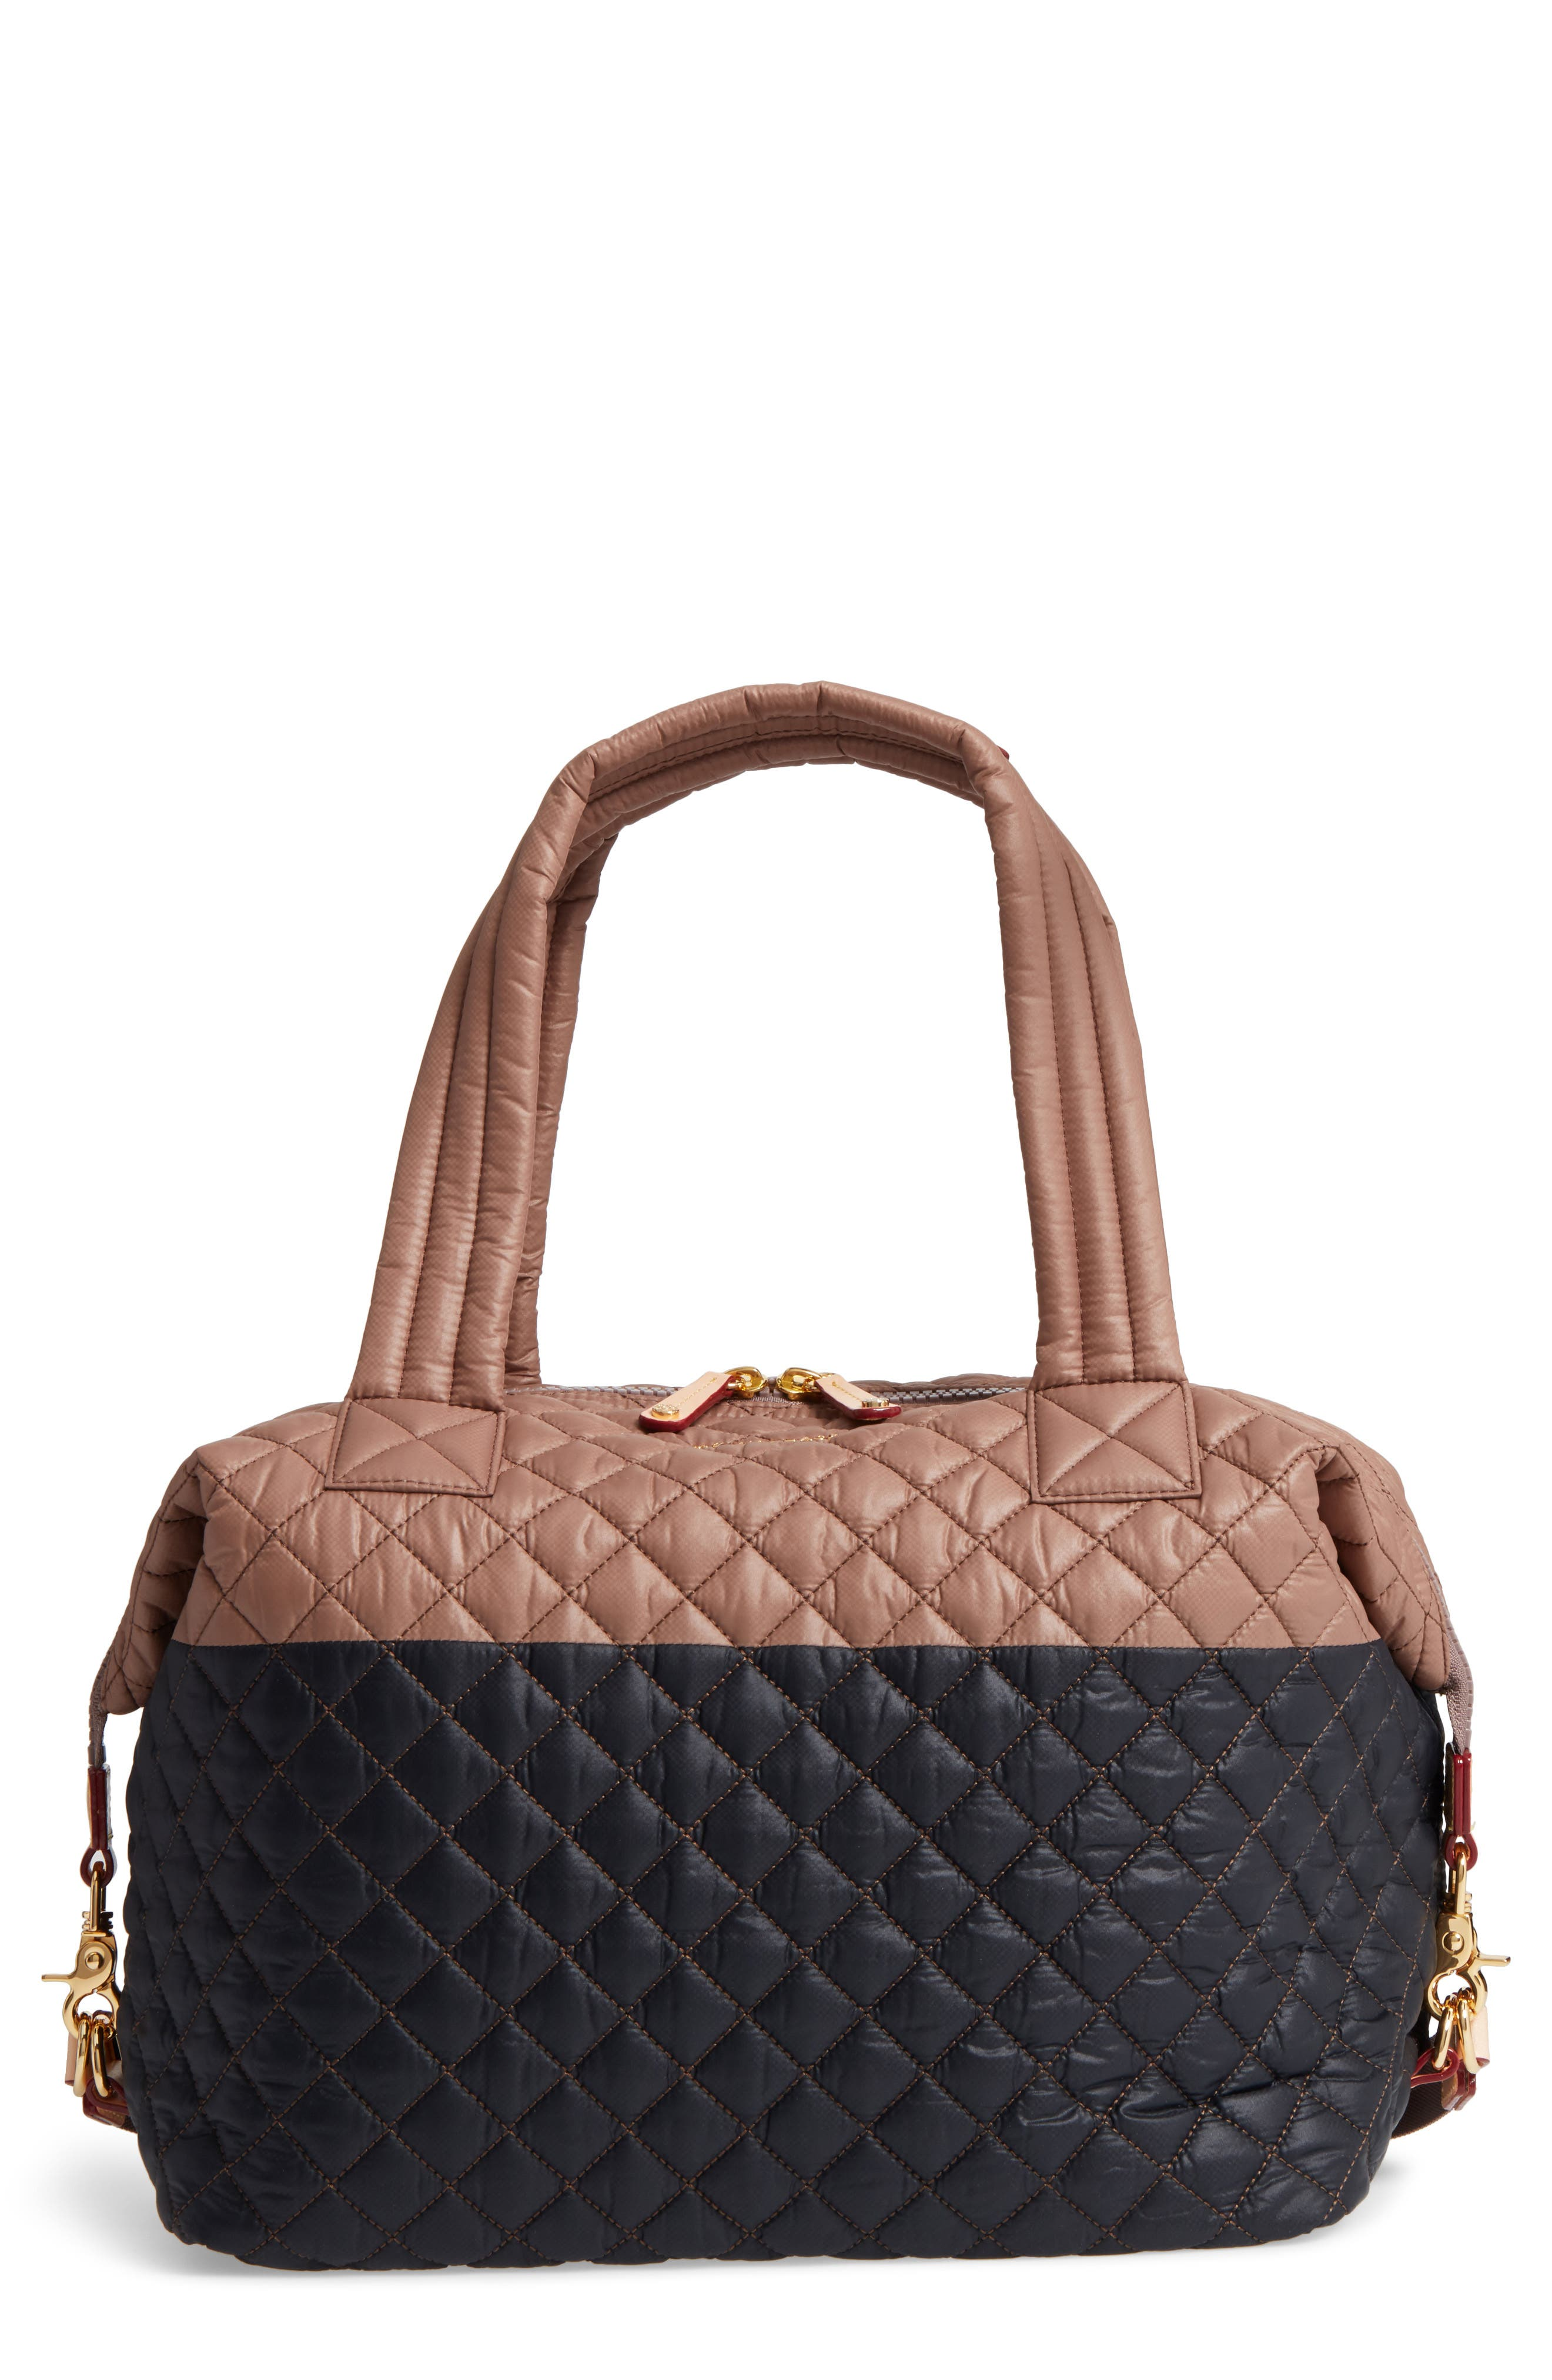 Alternate Image 1 Selected - MZ Wallace 'Large Sutton' Quilted Oxford Nylon Shoulder Tote